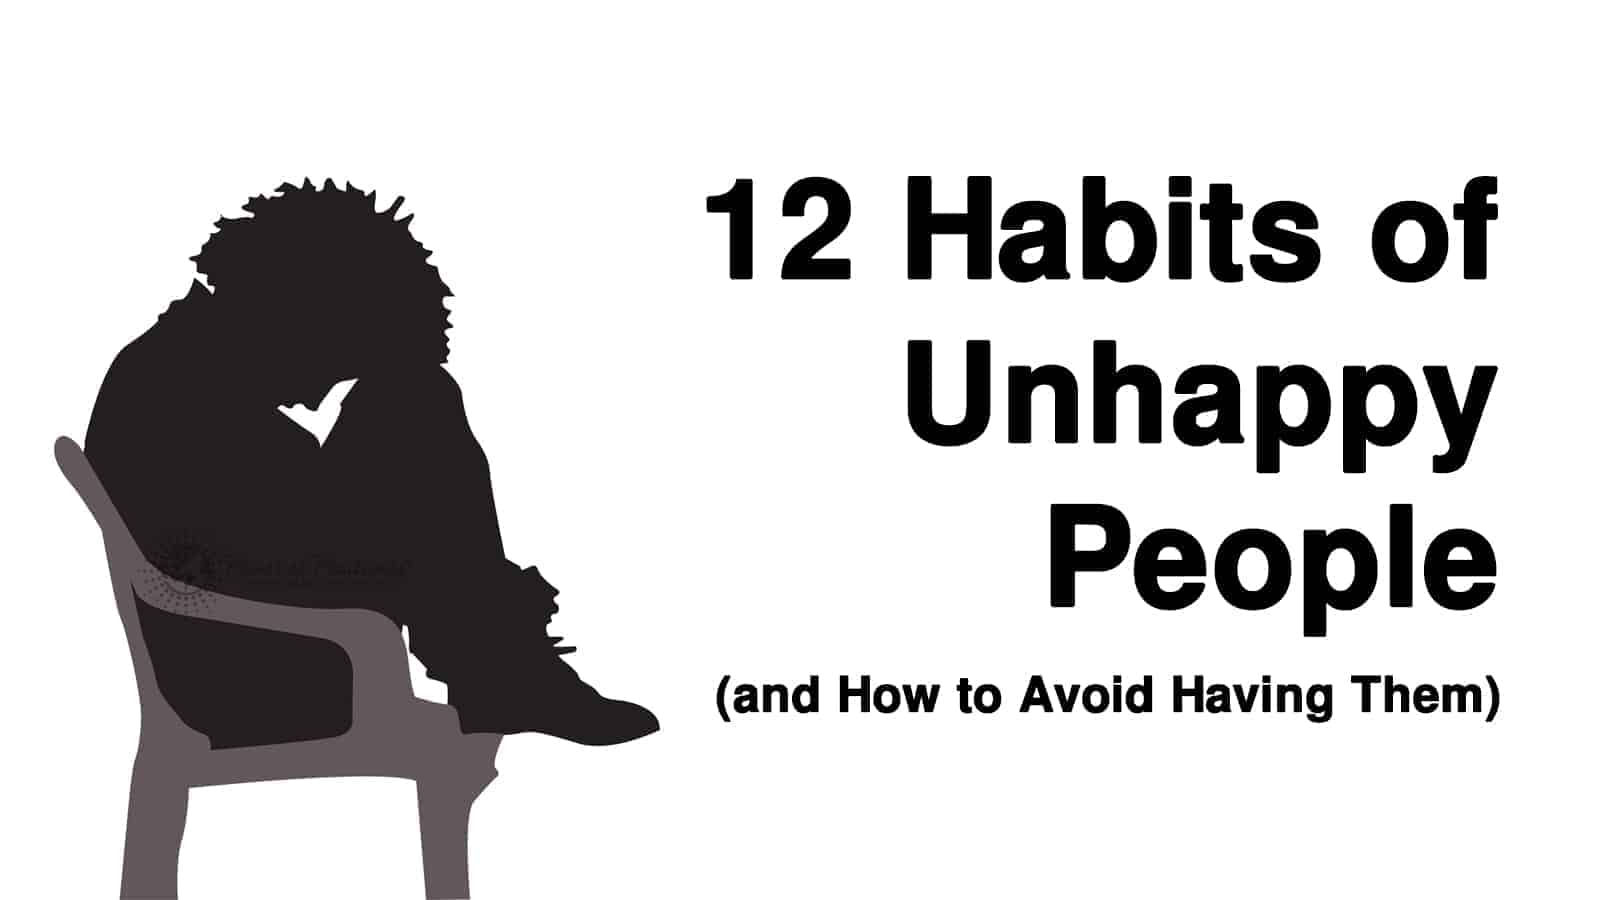 12 Habits of Unhappy People (and How to Avoid Having Them)